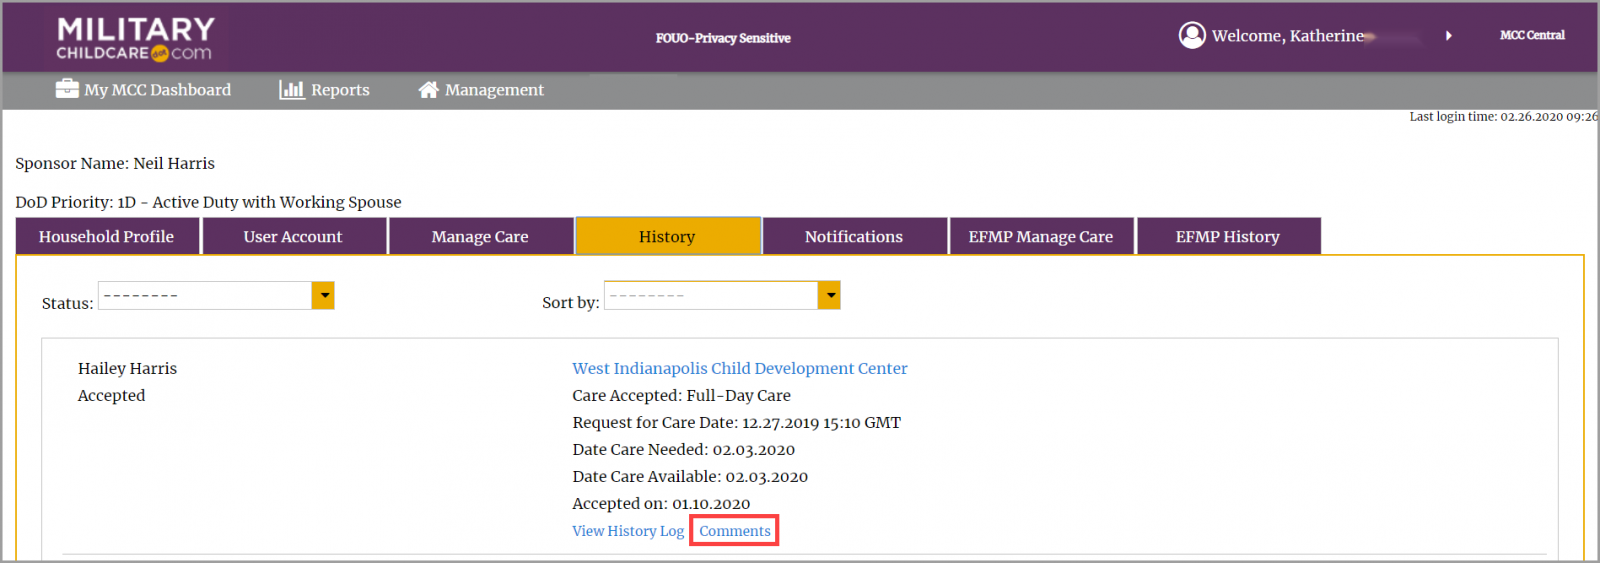 Accessing comments for an inactive request in household profile with comments link highlighted